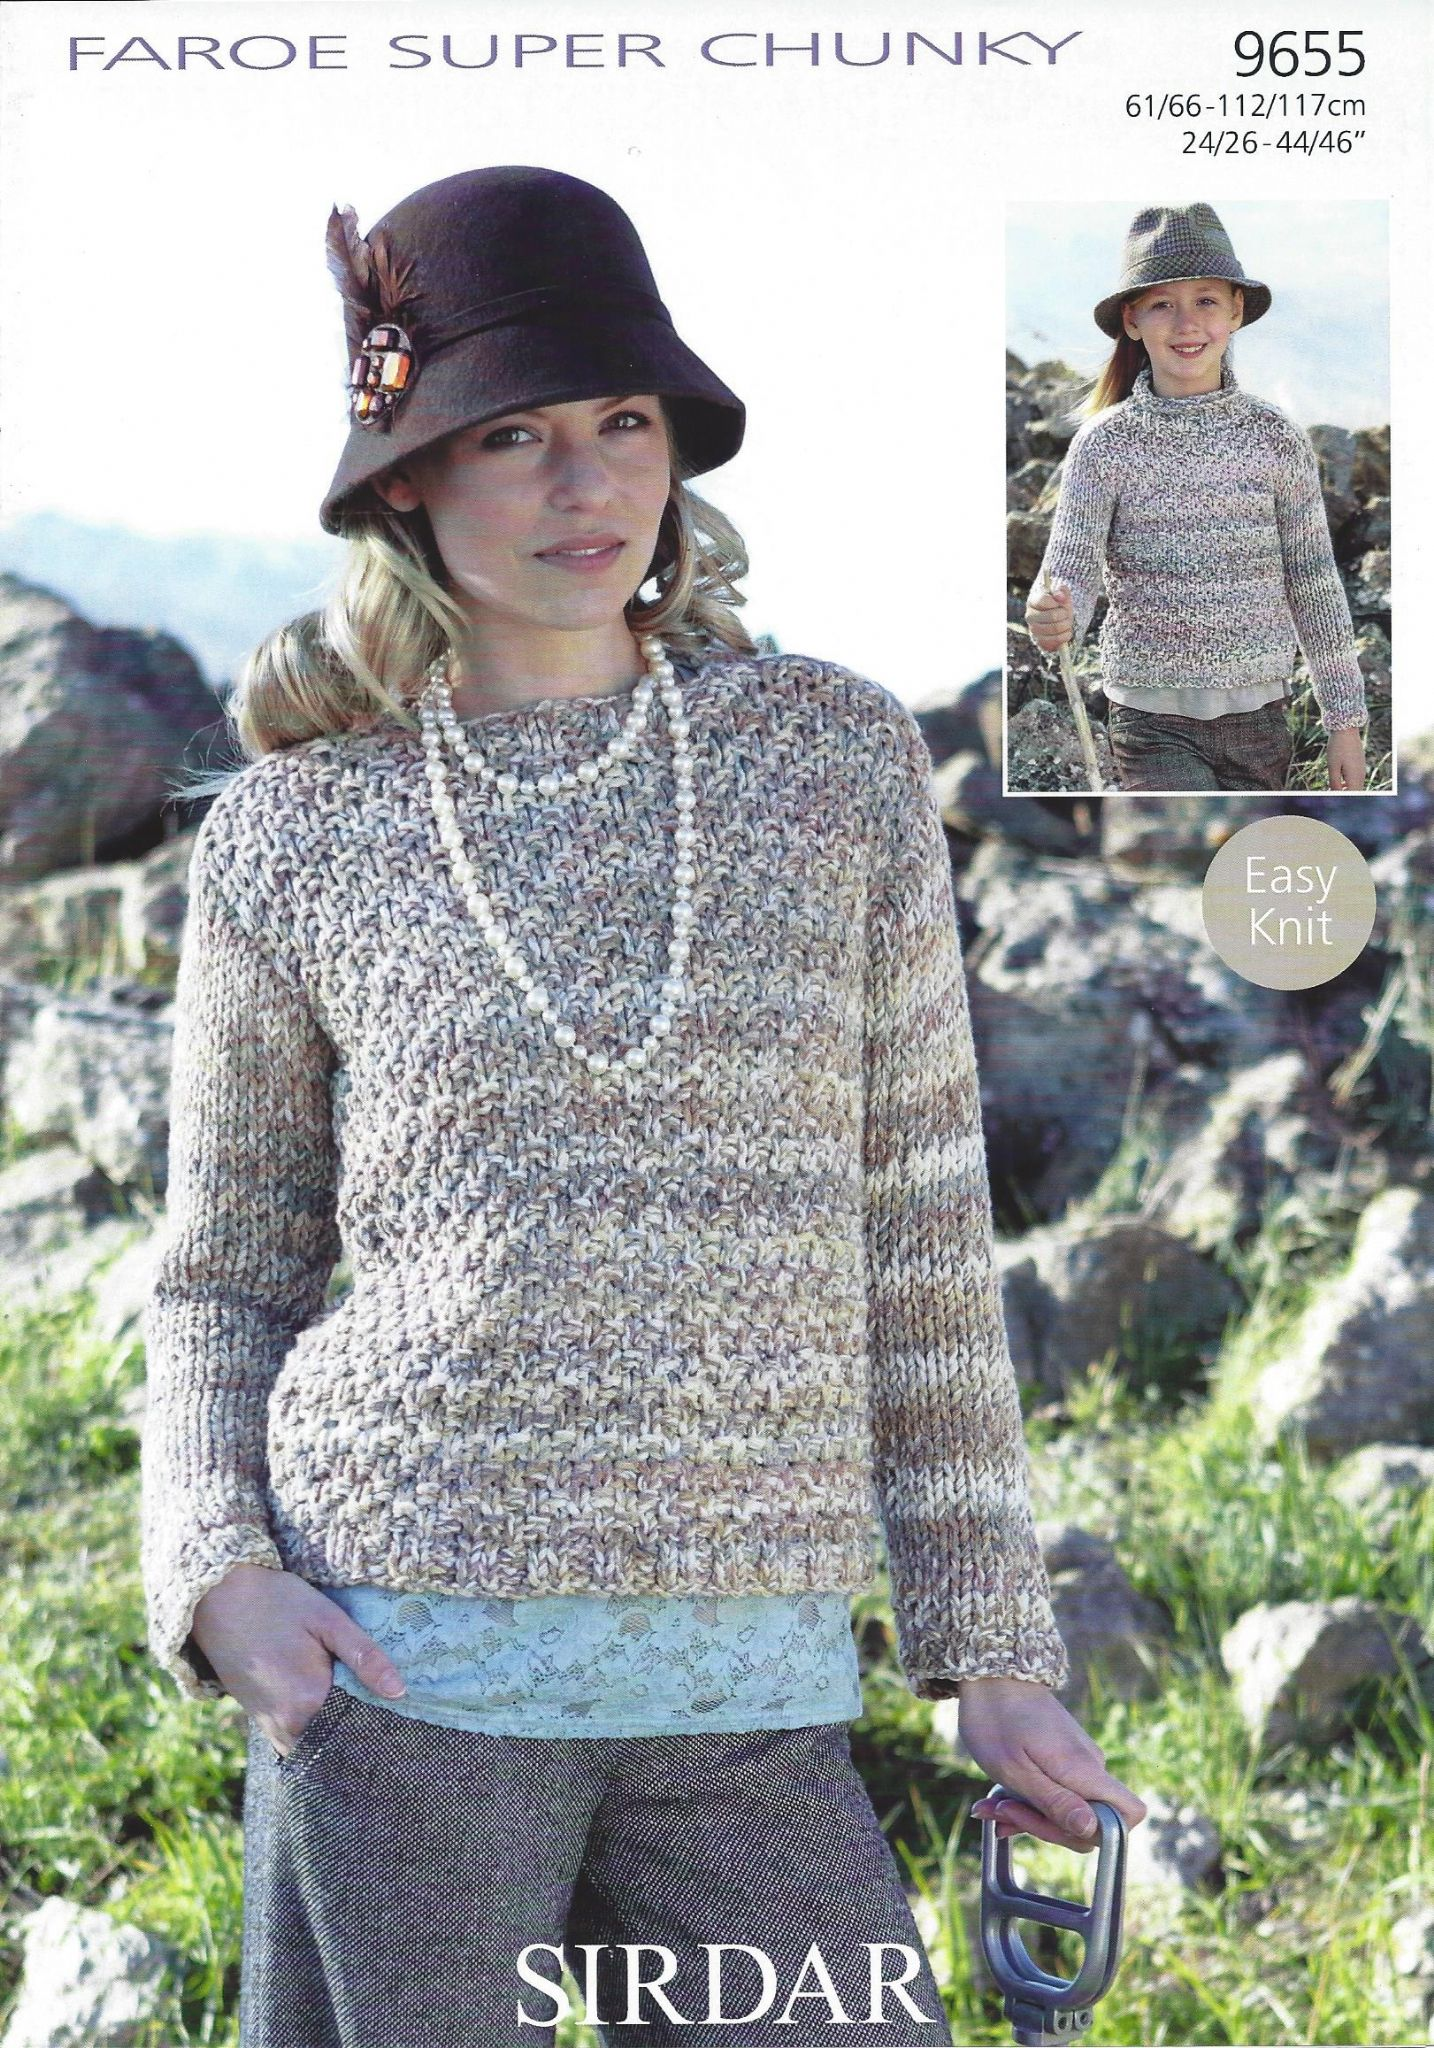 Sirdar faroe super chunky 9655 sweater knitting pattern bankloansurffo Image collections